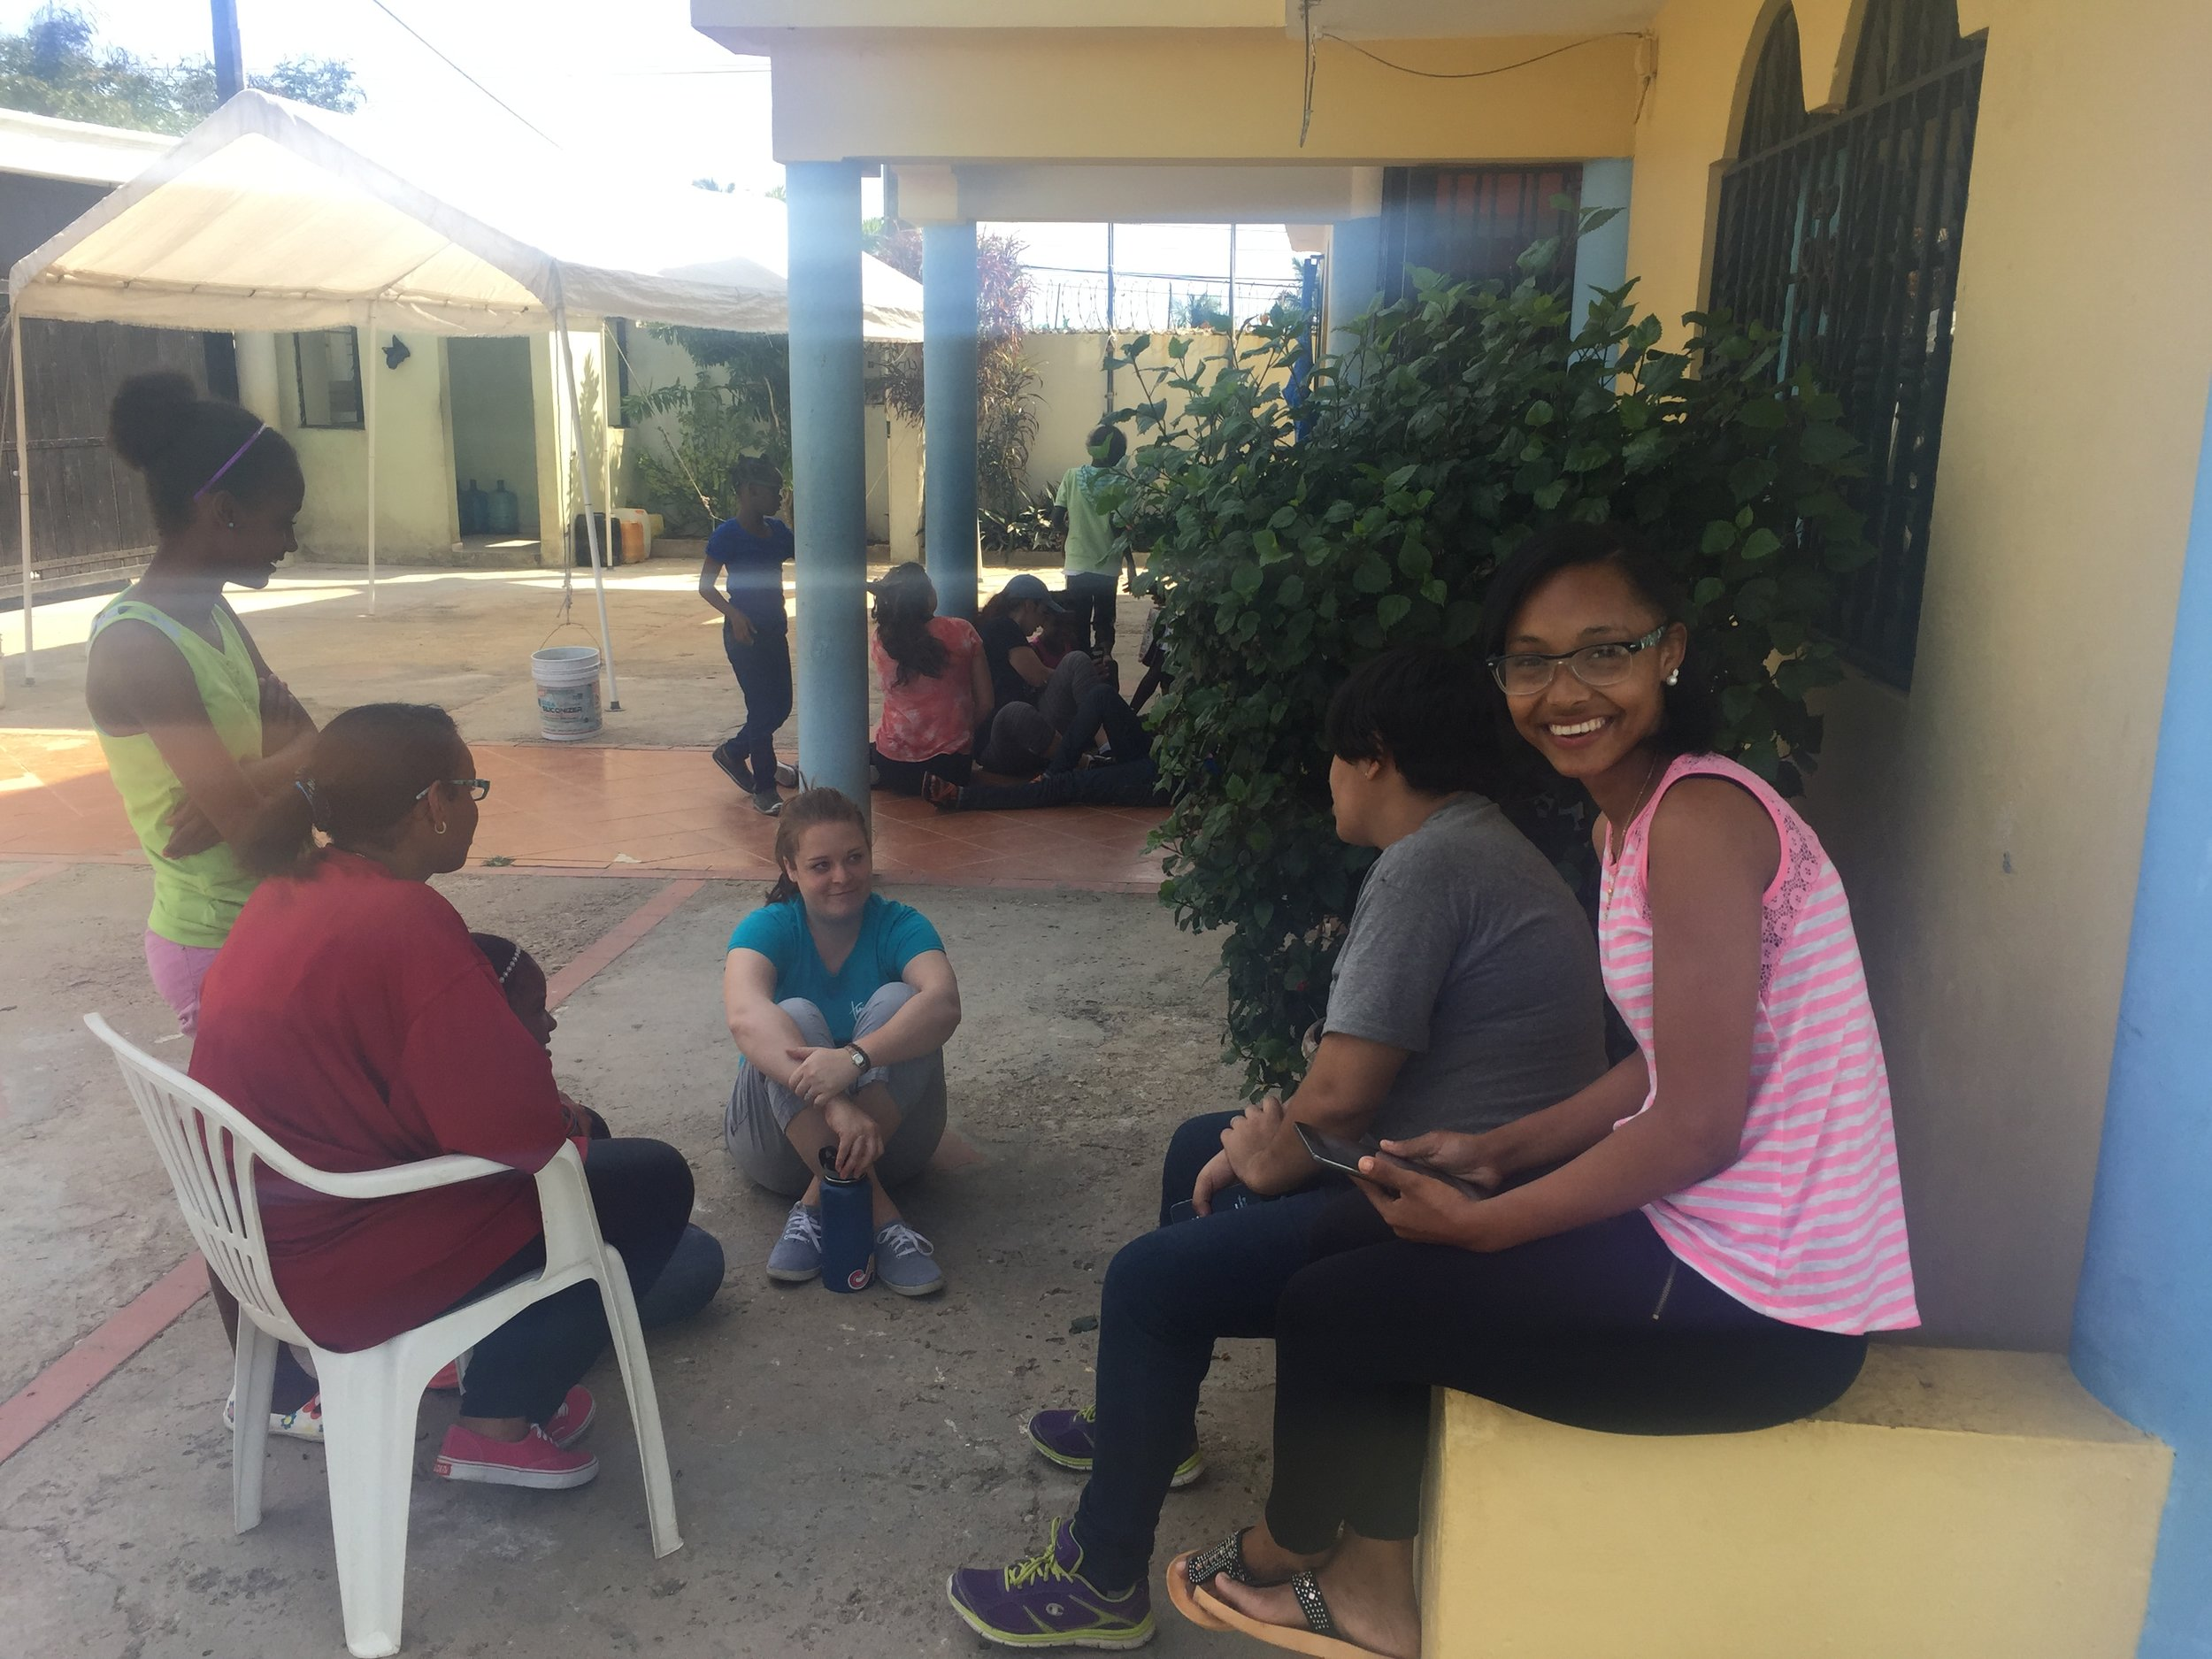 Jessica, our Vision Trust team leader (sitting on ground) chats with the Remar young women who have grown up at the orphanage.  Maricela (looking at camera) is a special friend.